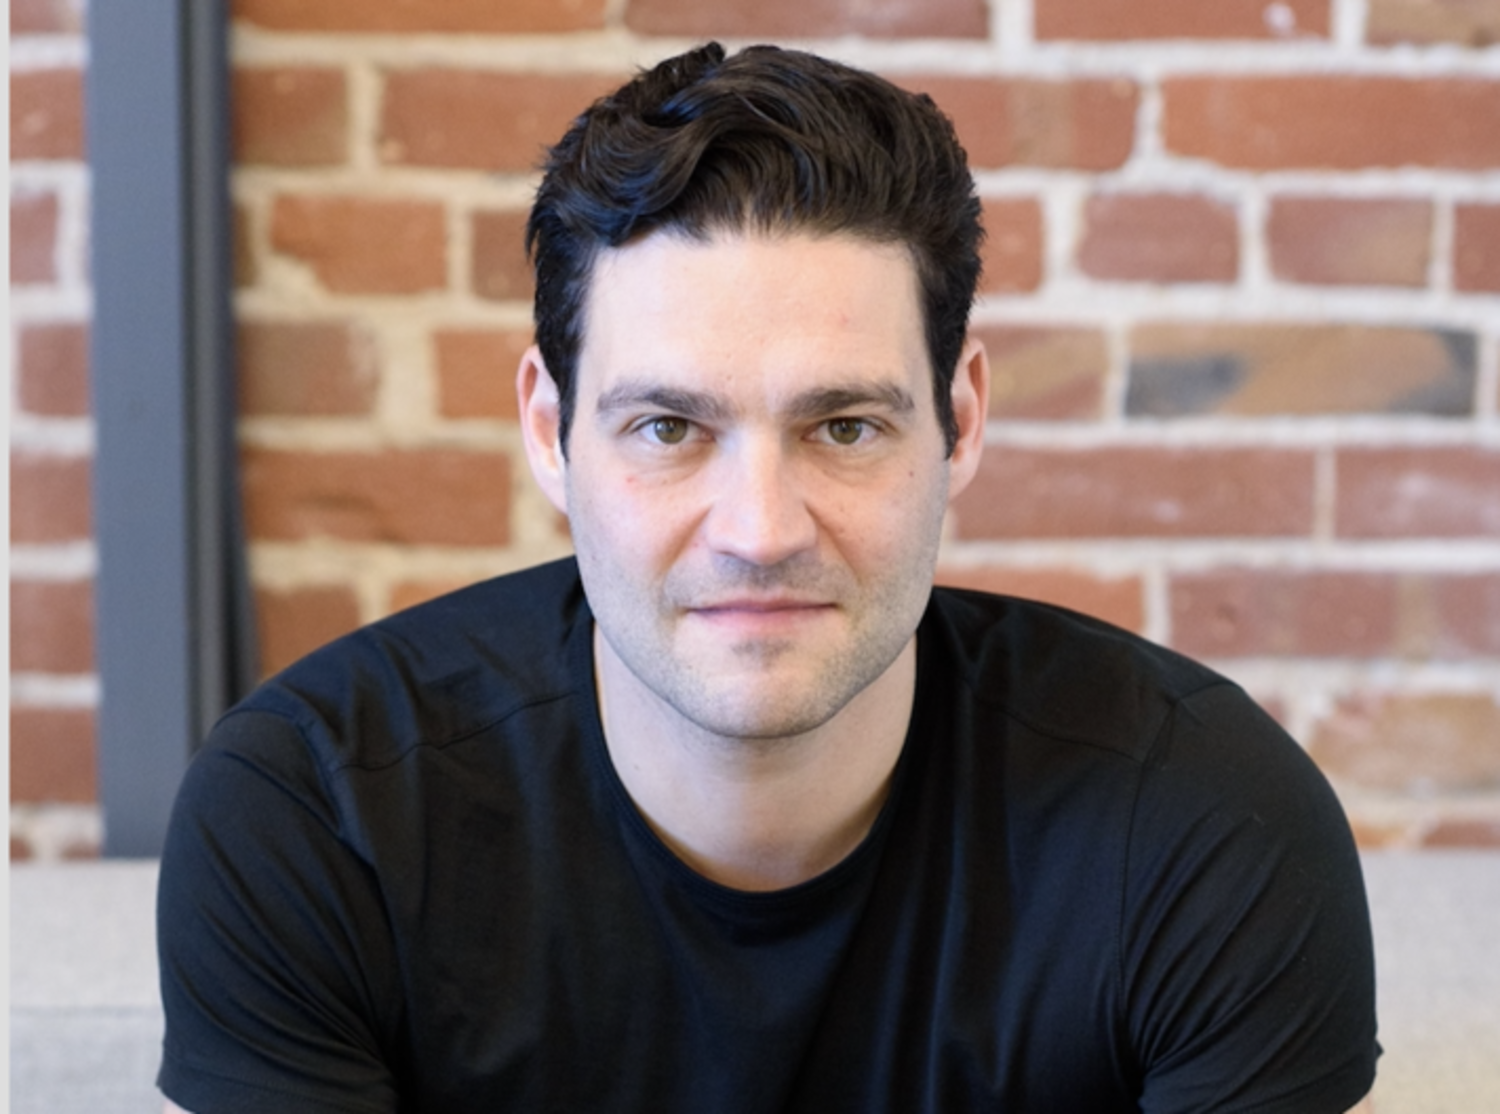 Ilya Fushman joins Kleiner Perkins as General Partner and Managing Member